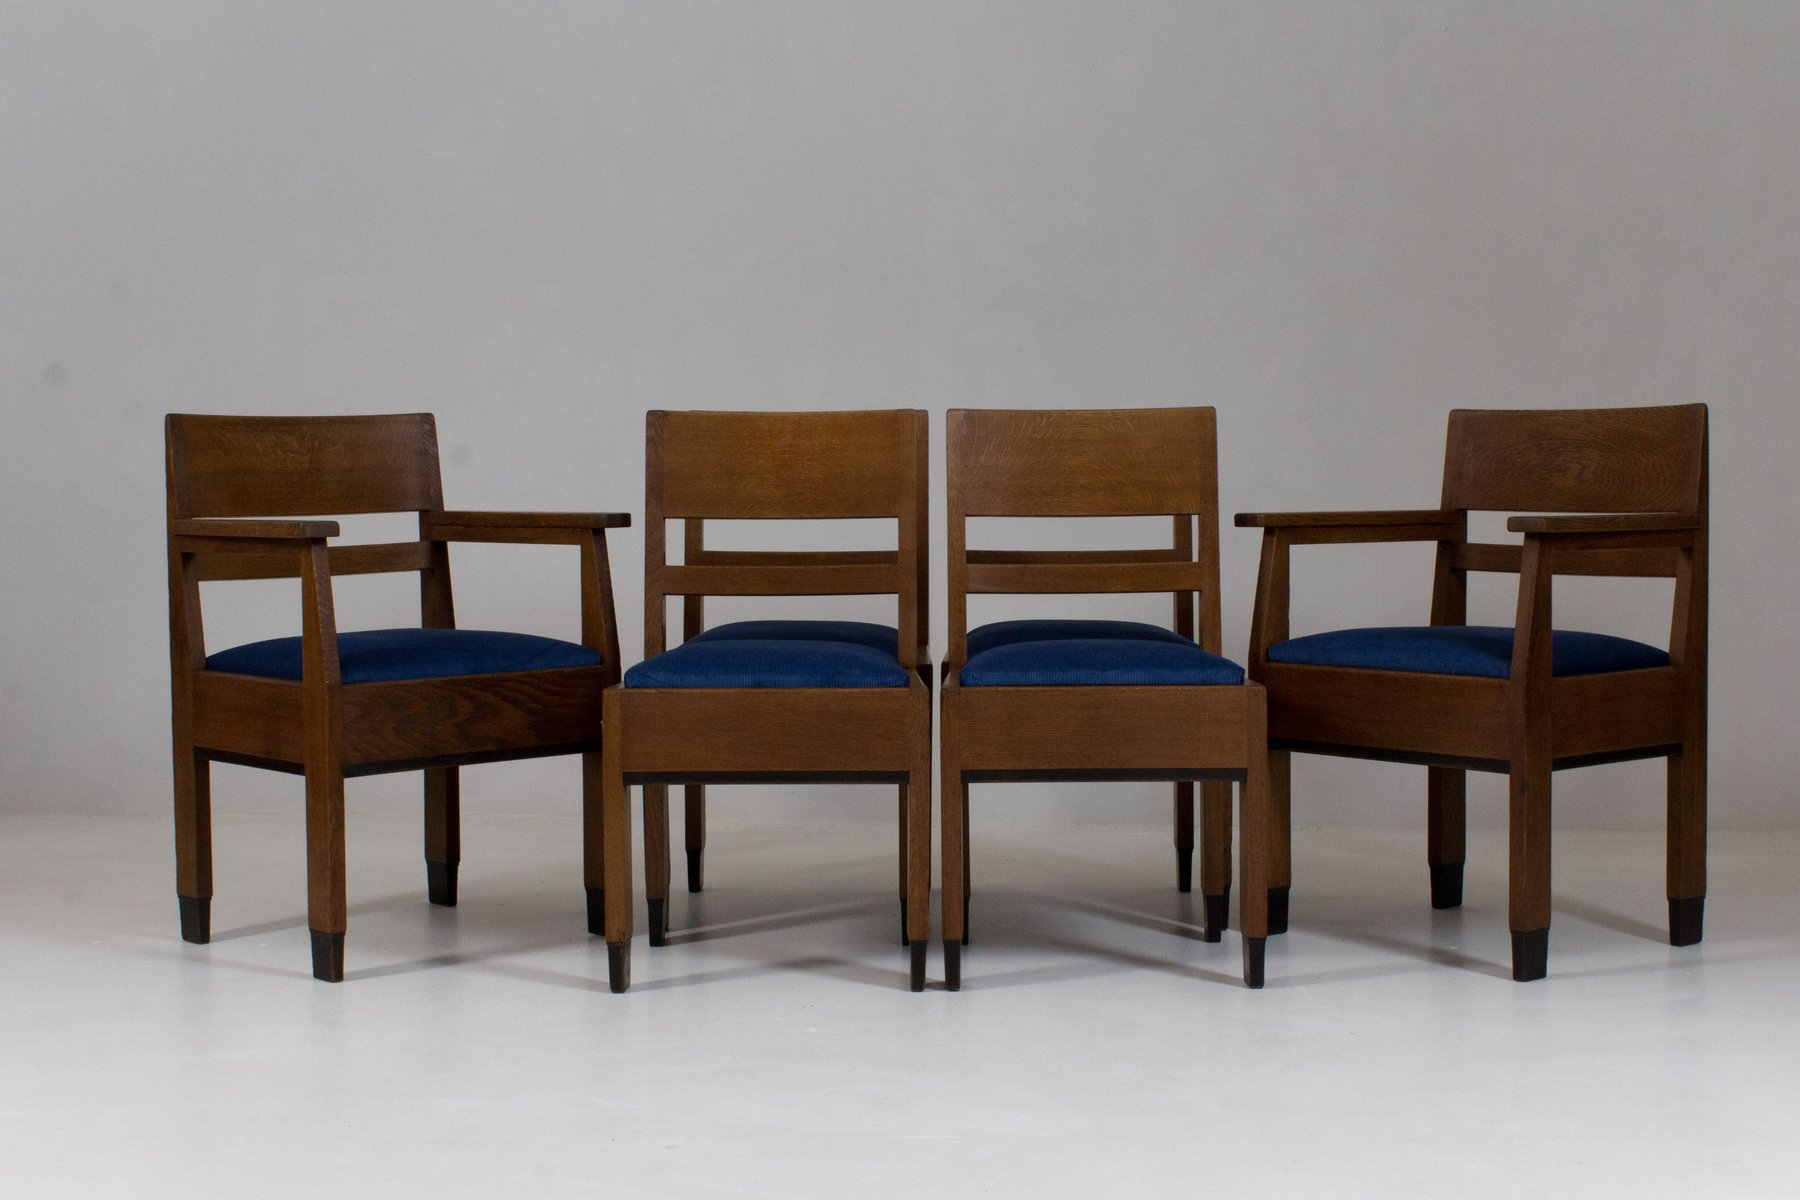 Art Deco Hague School Chairs by H Fels for L O V Oosterbeek